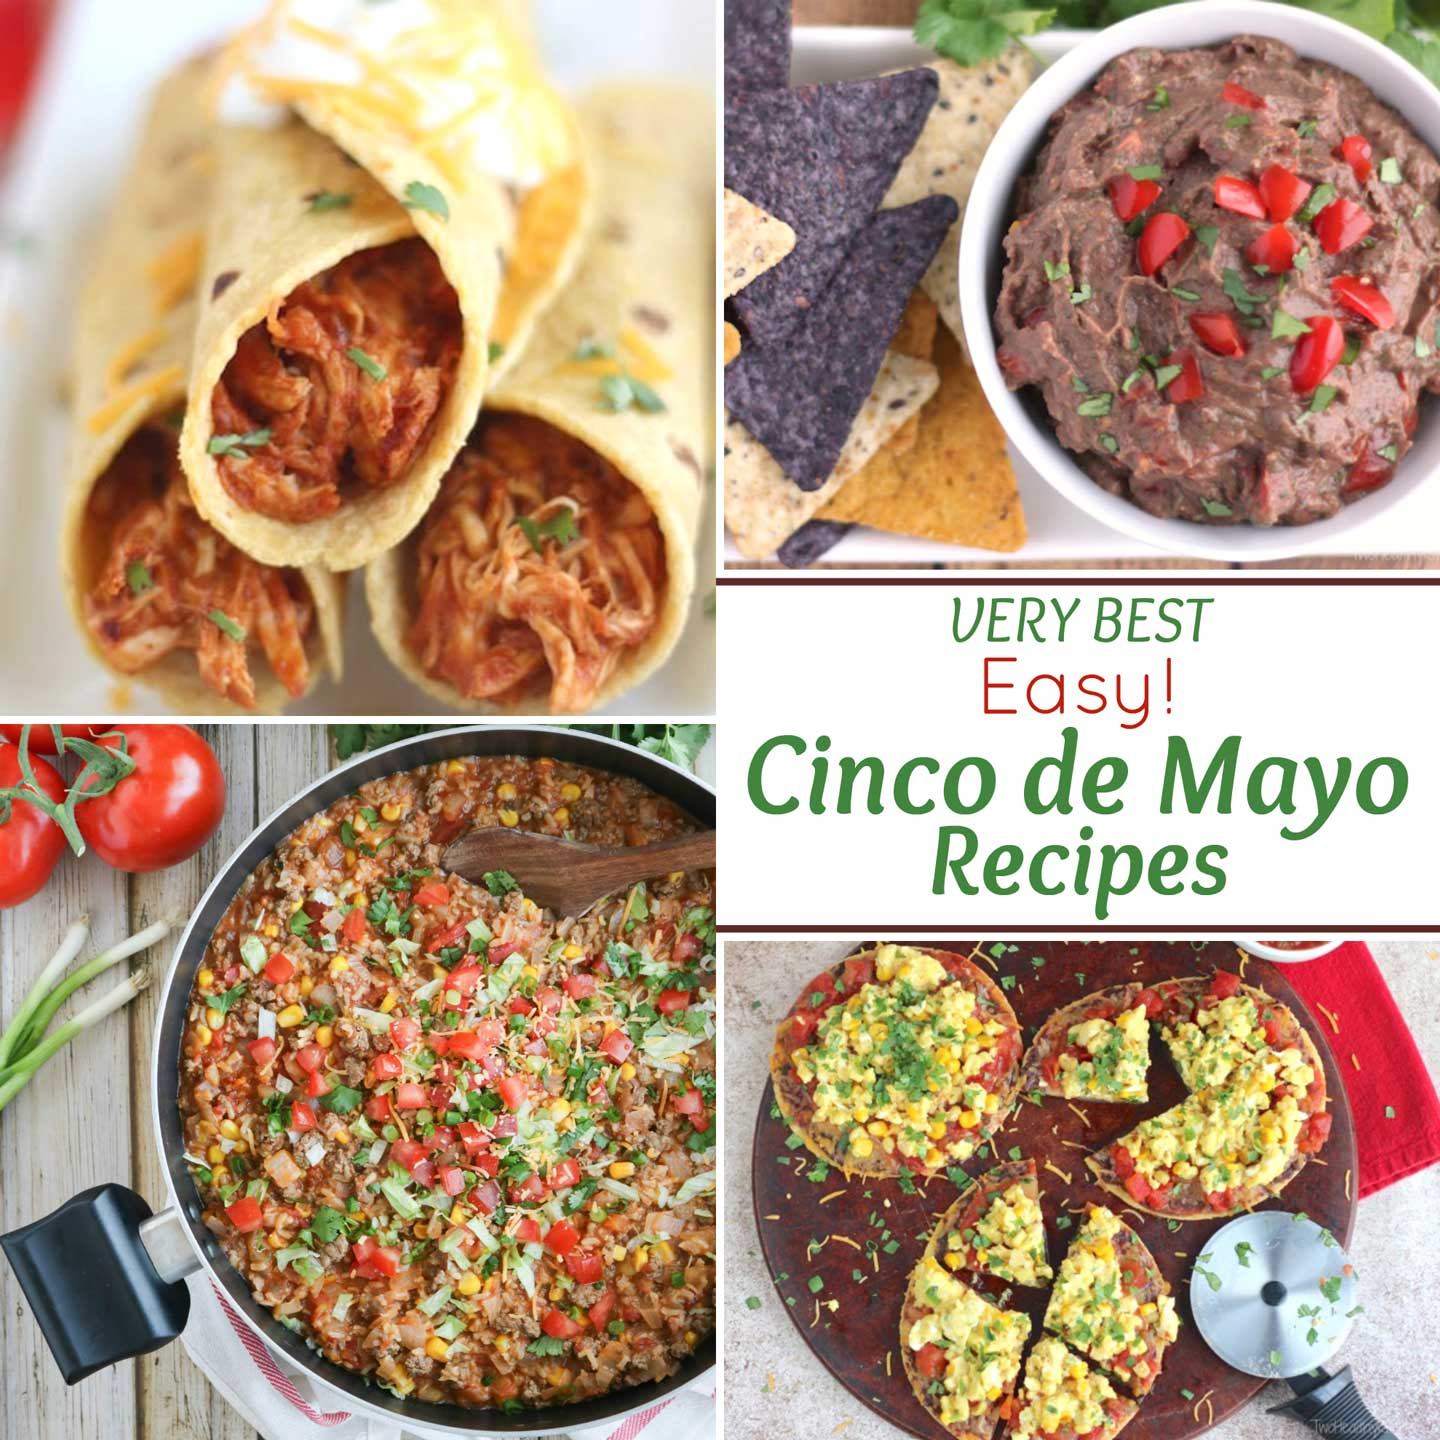 Fun inspiration for EASY Cinco de Mayo recipes! Perfect for quick family meals or for big Cinco de Mayo parties! From easy taco recipes ... to more unique twists to change things up a little! So many great ideas! We've got make-aheads and slow cooker recipes, fast appetizers and even Mexican-inspired burgers! Grab your piñata and a Mariachi band, and let the party begin! | cinco de mayo party ideas food | cinco de mayo recipes easy | tacos | Mexican food recipes | www.TwoHealthyKitchens.com